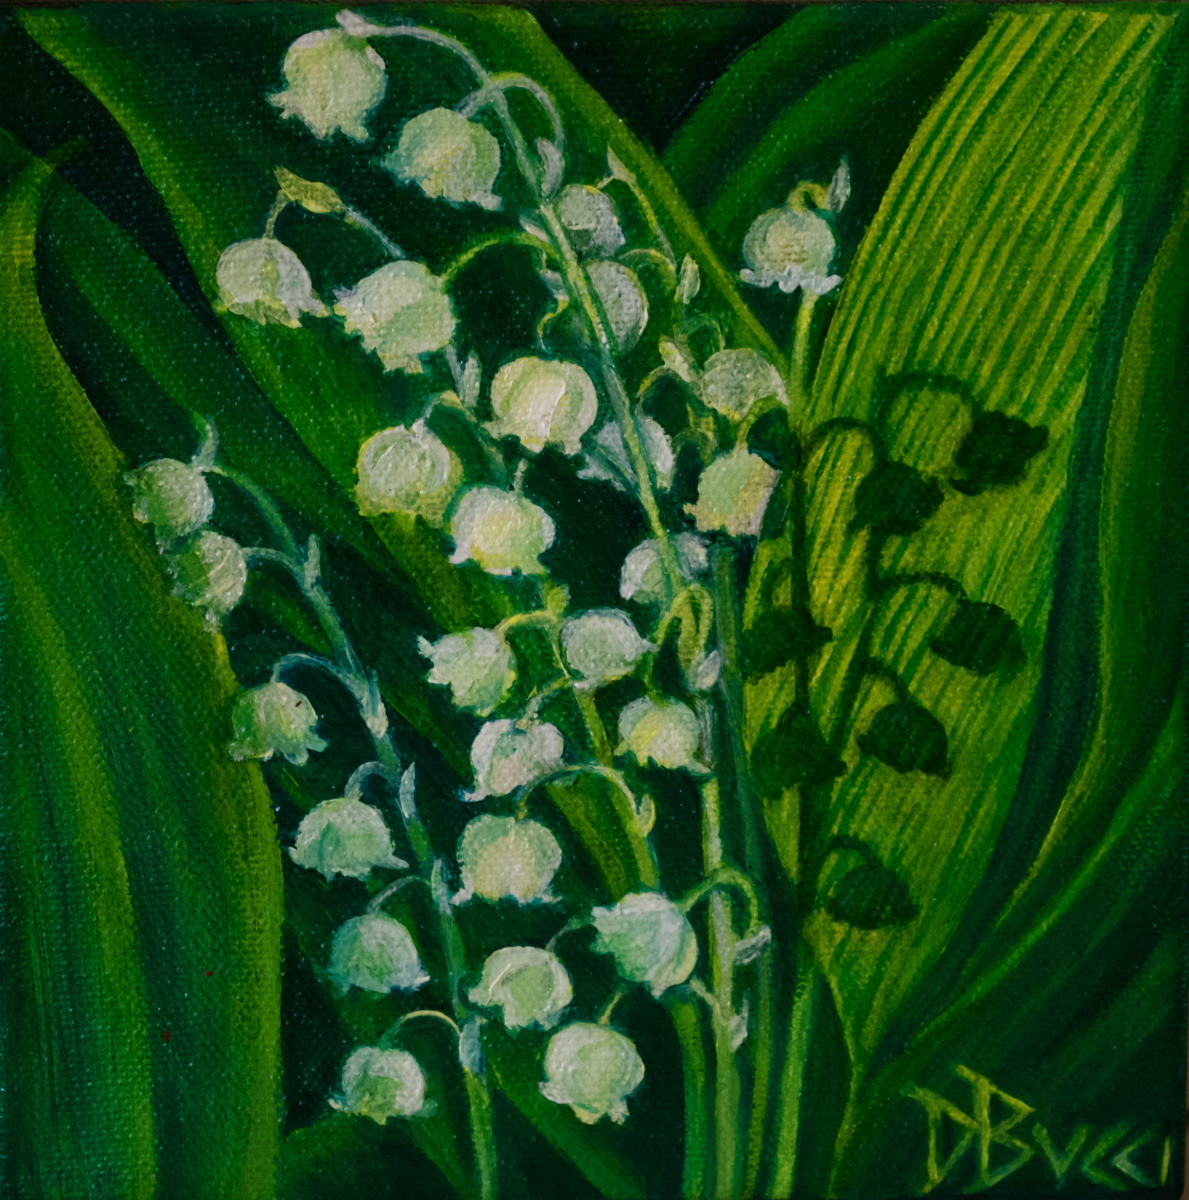 "Debra Bucci Fine Art presents Lily of the Valley 2 which is a Pocketbook or miniature oil painting that measures 6"" square. This is white, yellow and green painting with shadows coming through the leaves. It is a feel good painting.